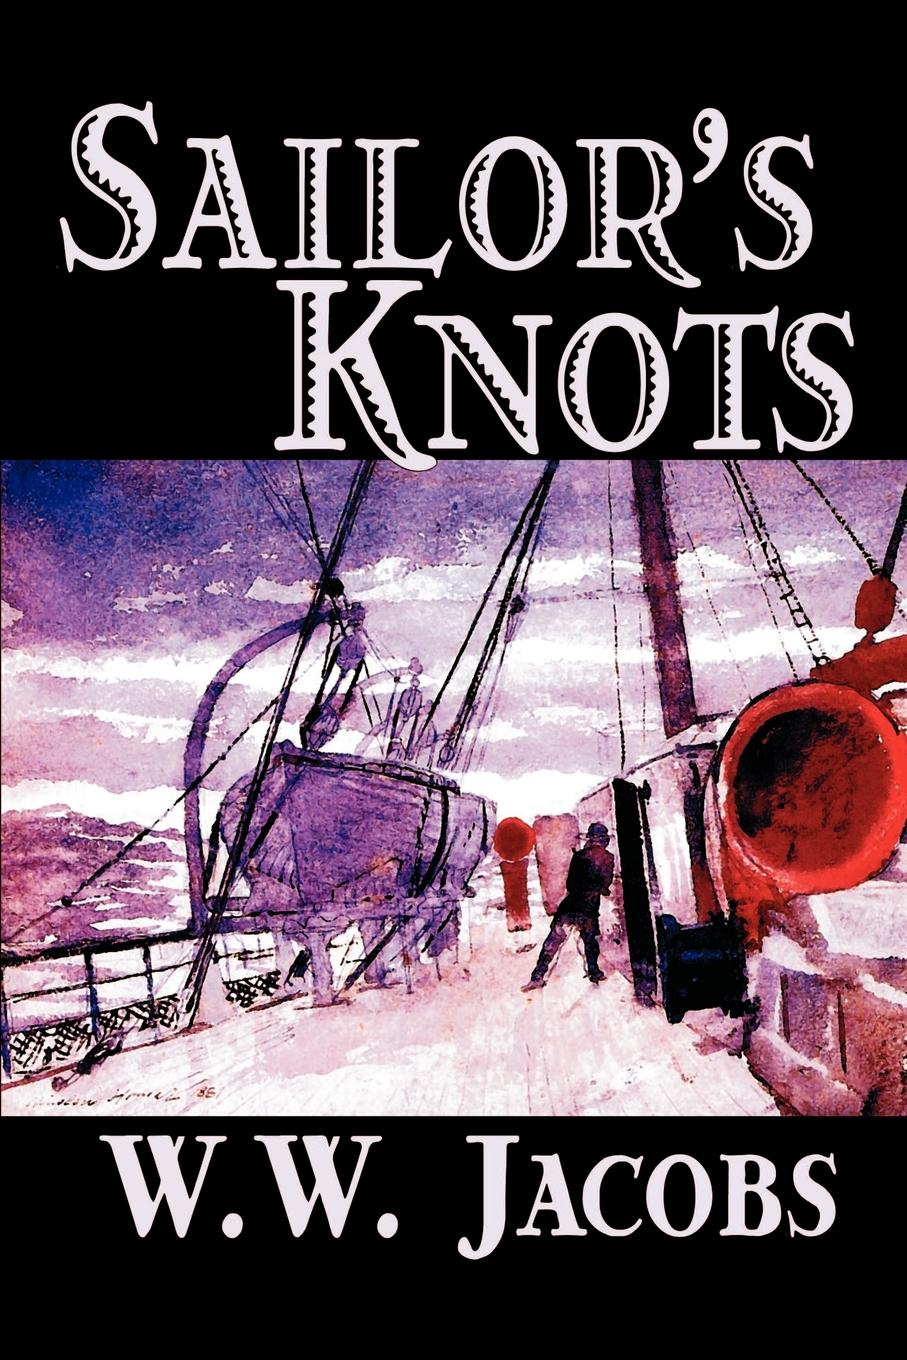 W. W. Jacobs Sailor's Knots by W. W. Jacobs, Classics, Science Fiction, Short Stories jd mcpherson jd mcpherson let the good times roll